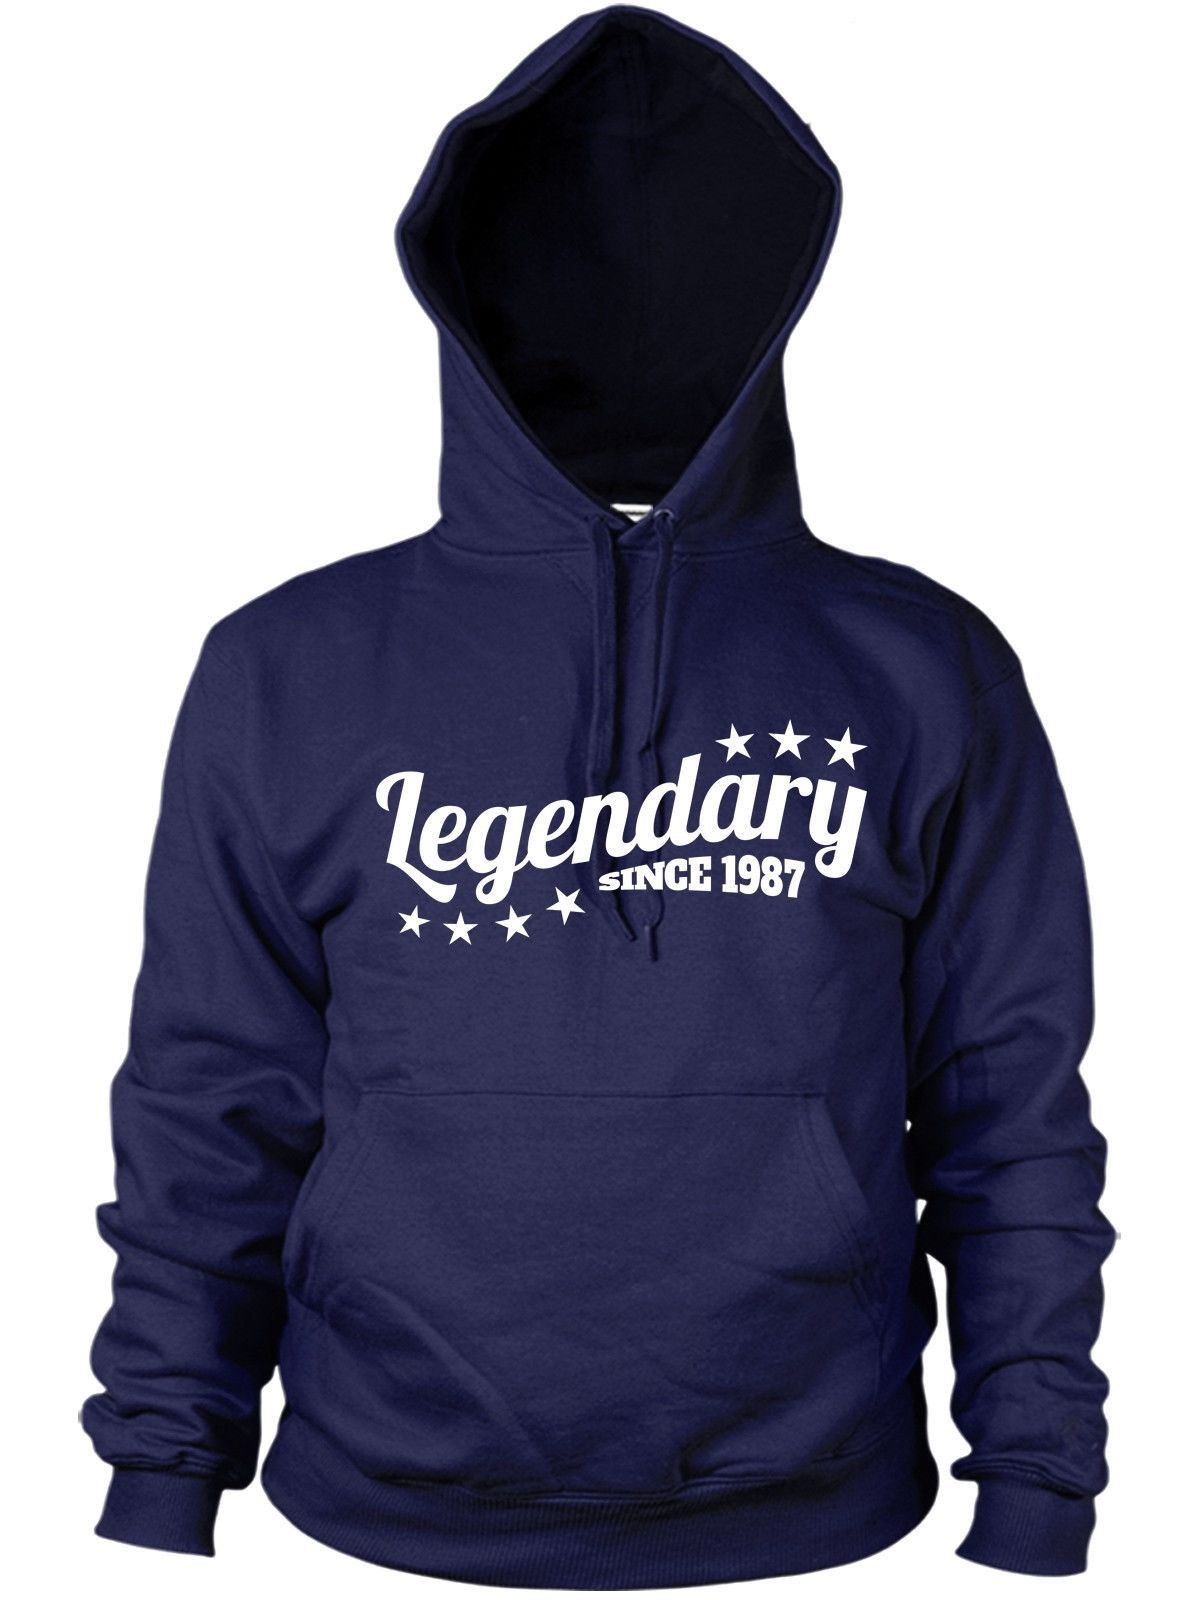 Legendary Since 1987 Hoodie Birthday Gift Years 29 30 Old Legend Men Women Funny Product Image 1